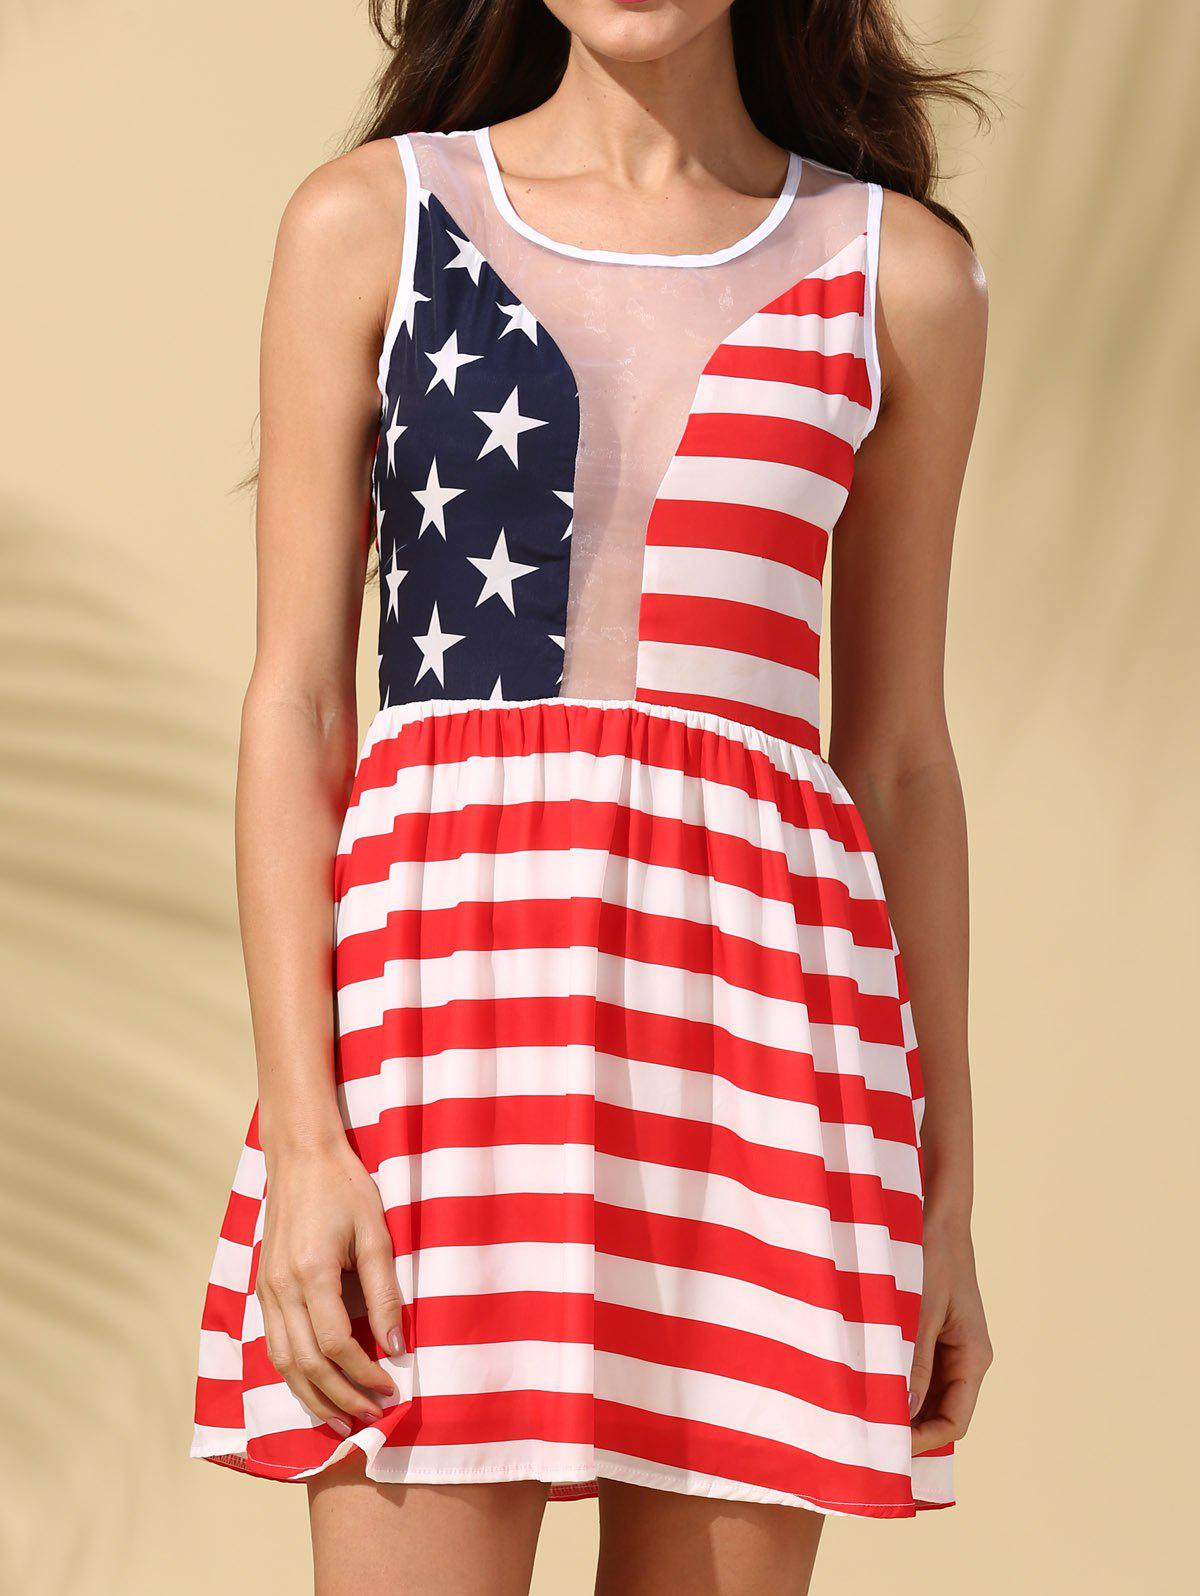 Store American Flag See-Through Patriotic Dress